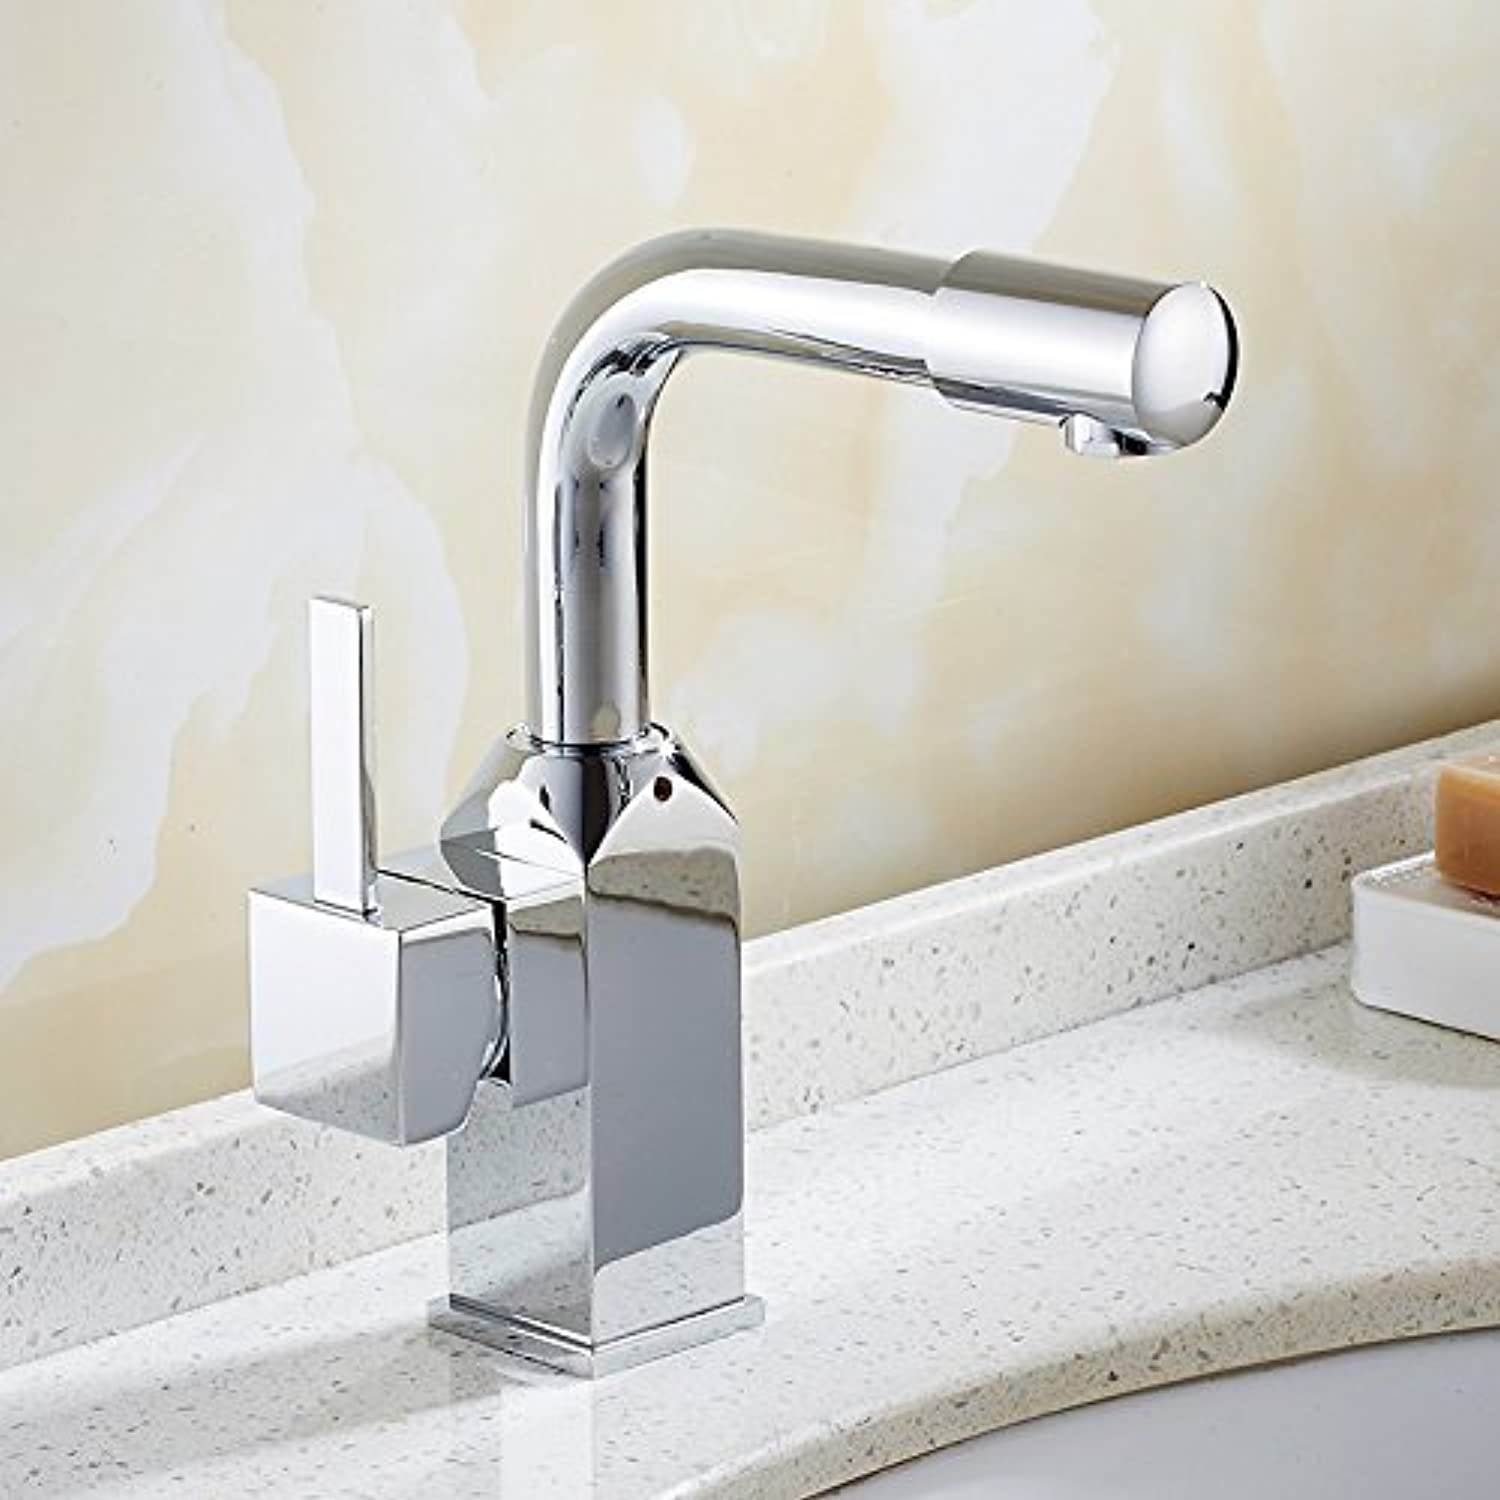 The Design of The Bridge of The mounting of Faucet Kitchen Mixer Faucet Chrome Handle with a Brass Coil